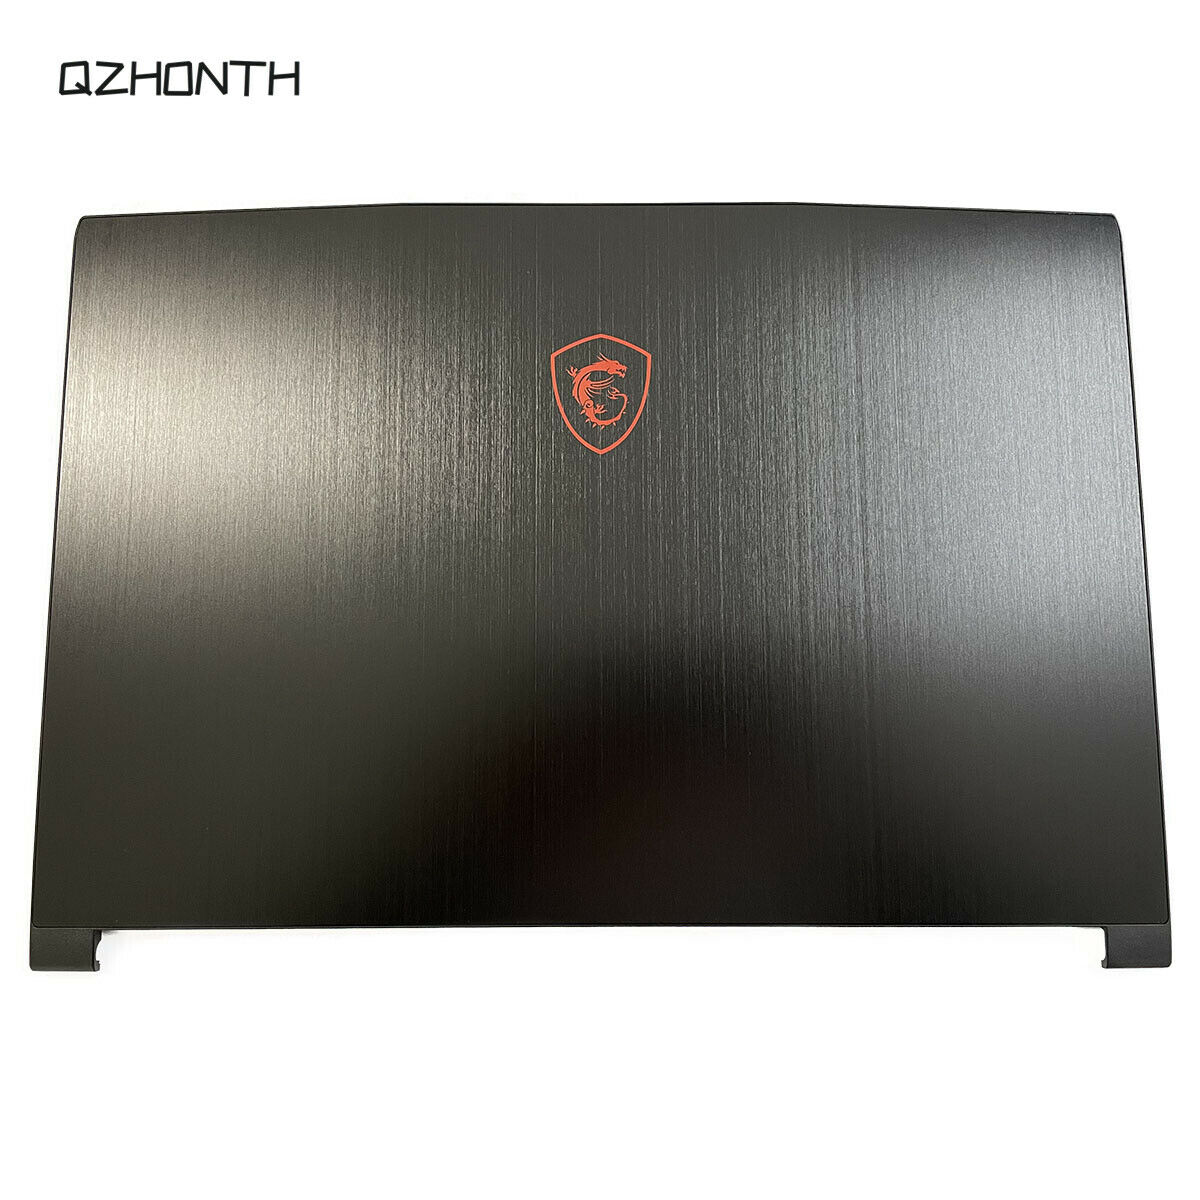 New LCD Back Cover Rear Lid For MSI GF63 GF63VR 8RC 8RD MS-16R1 3076R1A211